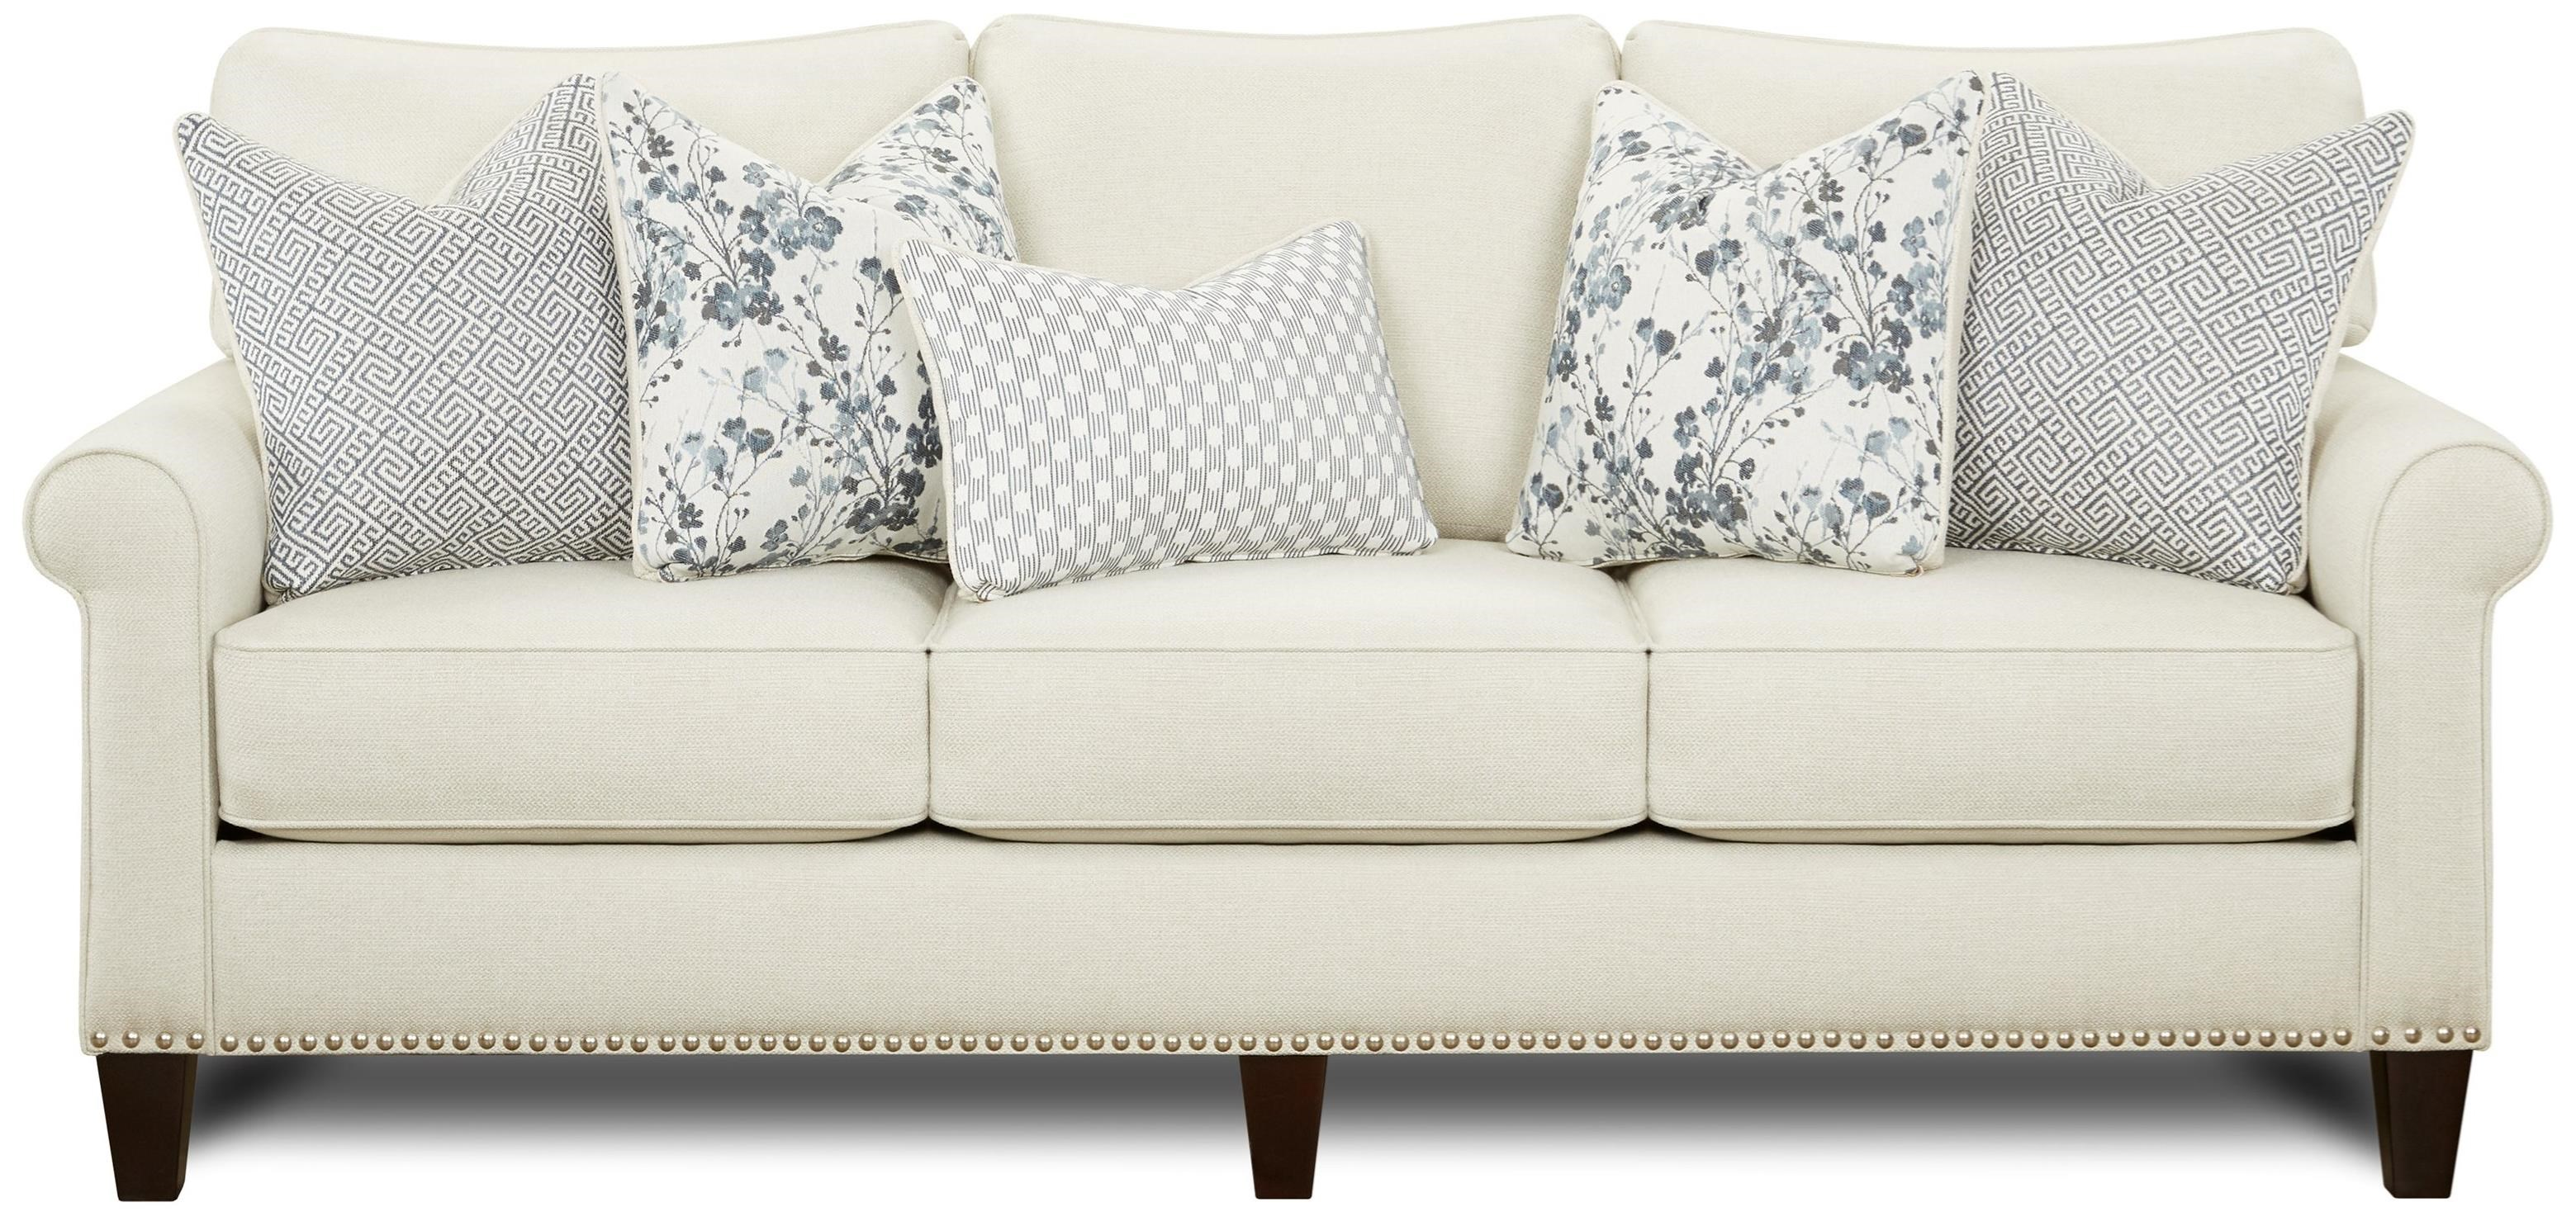 46-00 Sofa by FN at Lindy's Furniture Company